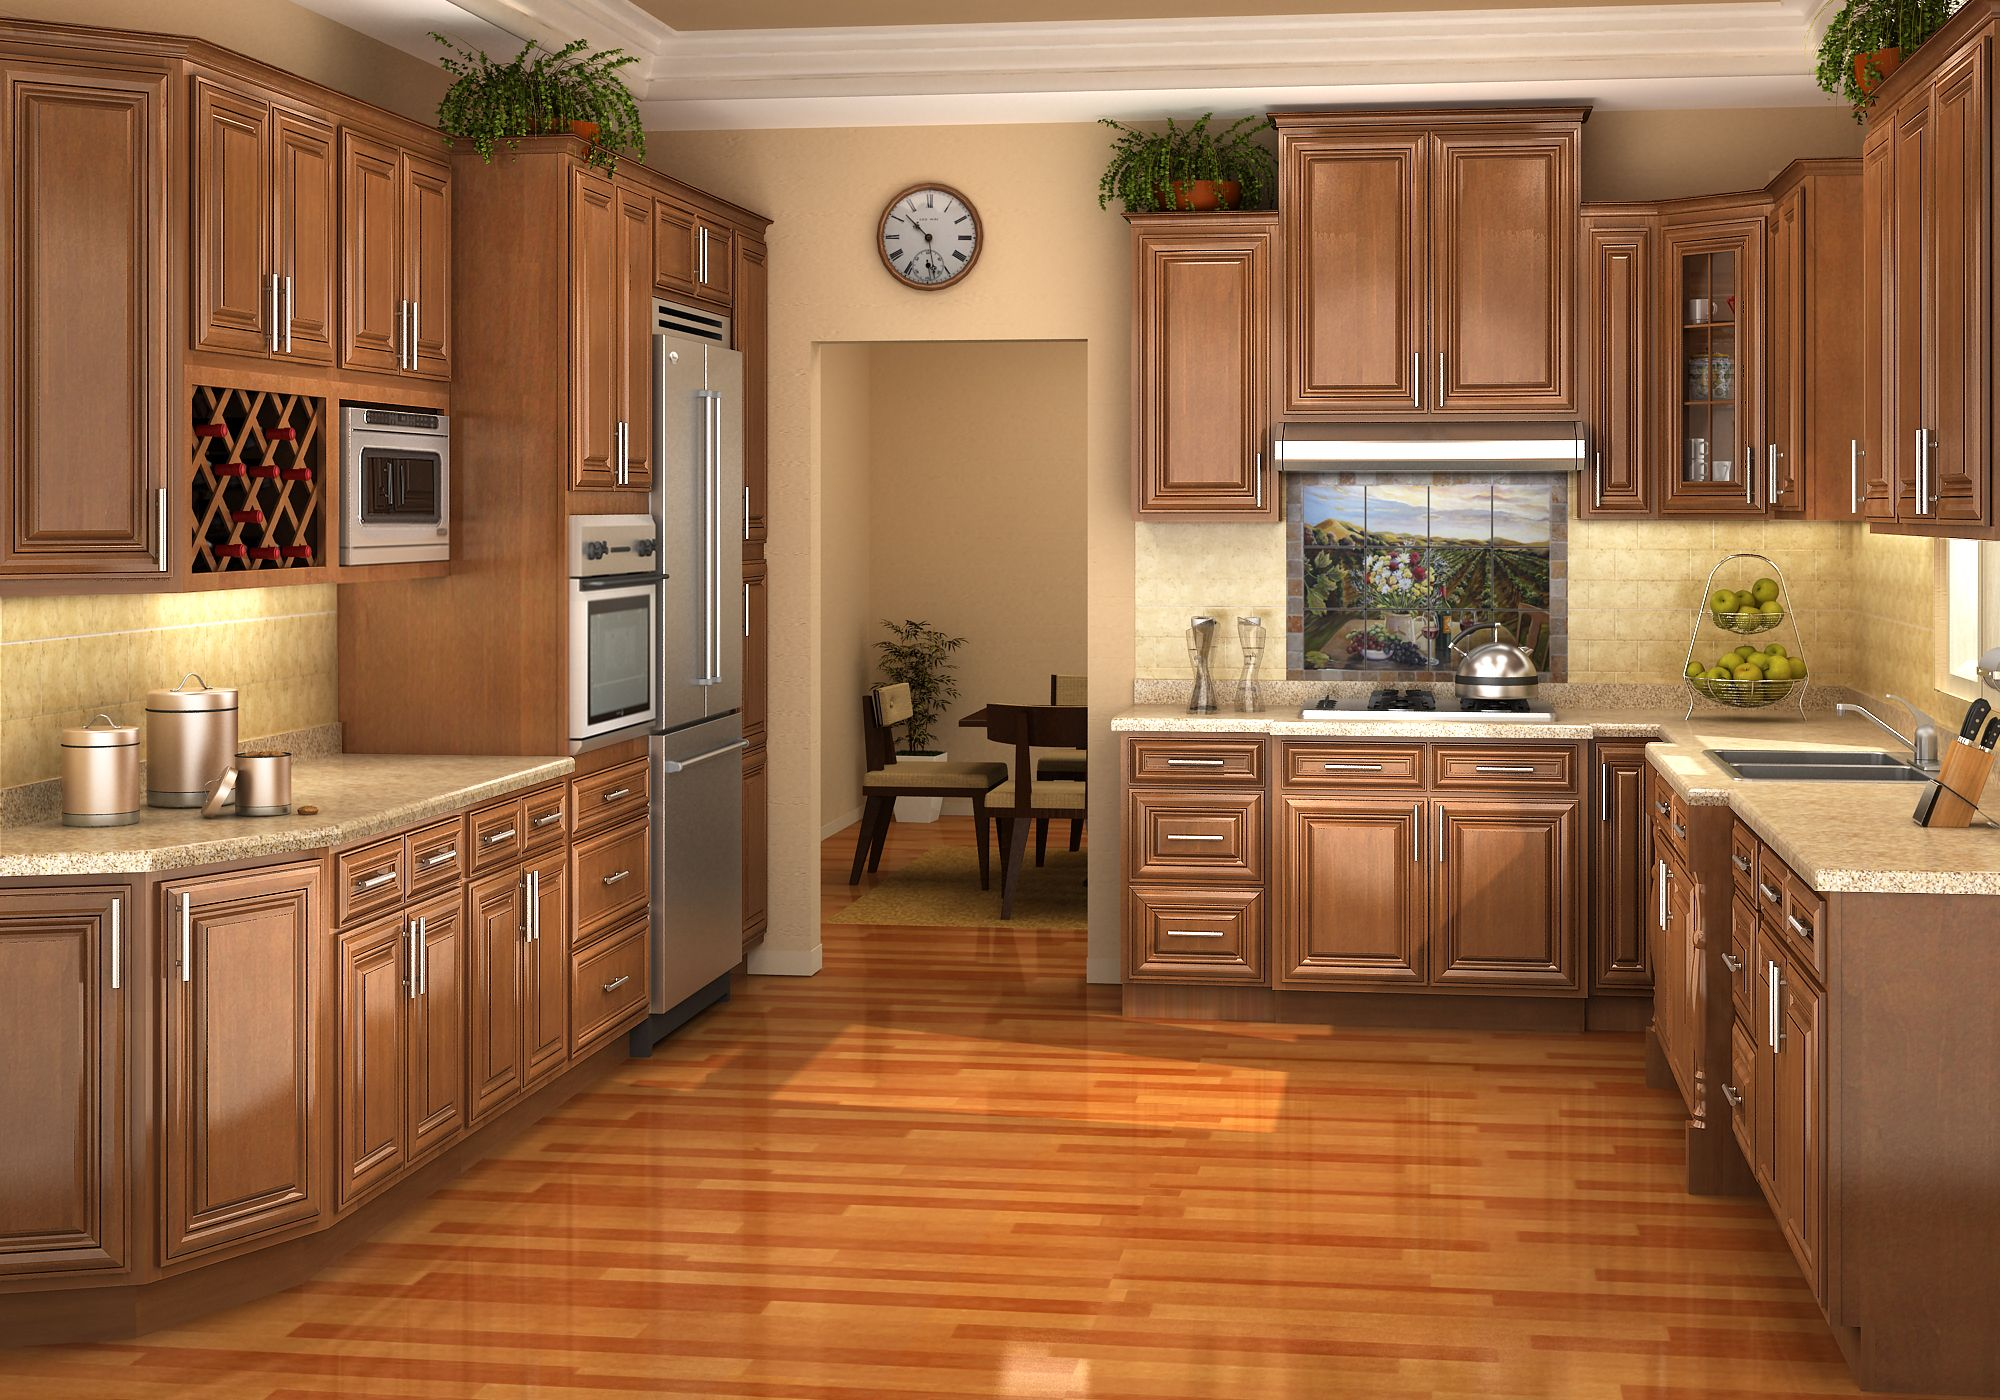 The Imperial Shaker Pre Assembled Kitchen Cabinet Collection